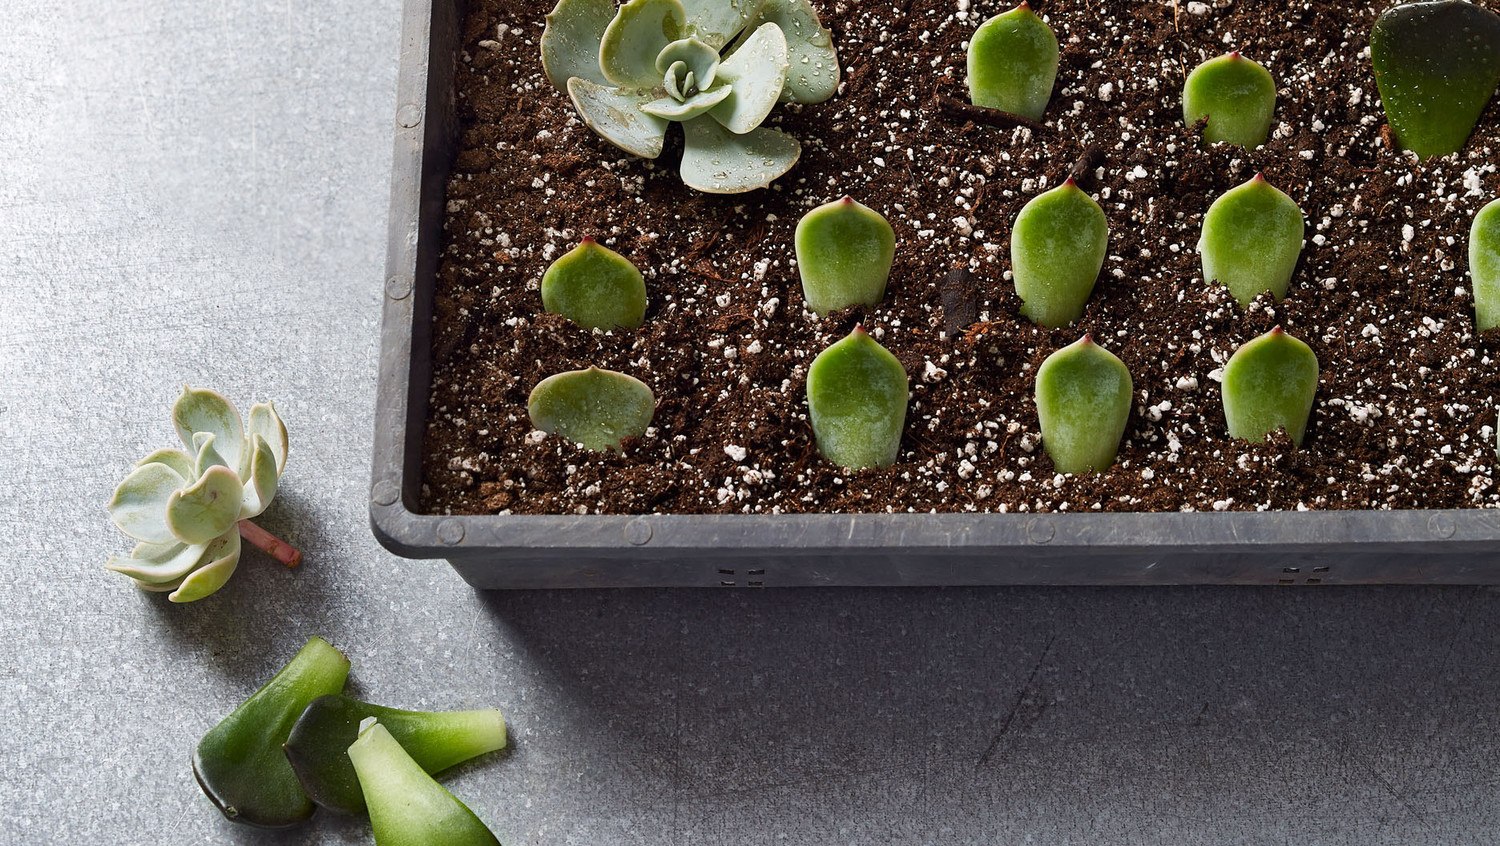 Propagating Succulents: 1 Plant, Hundreds of Babies ...